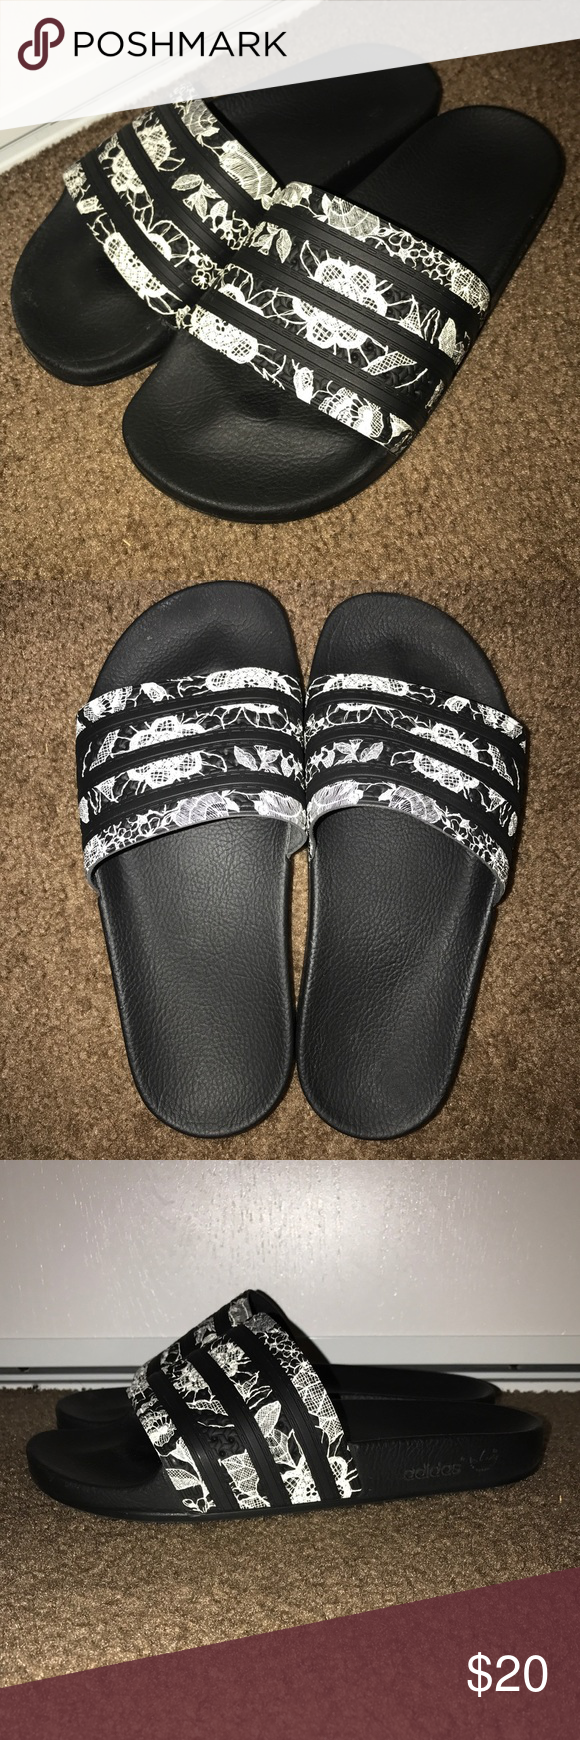 4c63579a9e6c Adidas Originals Adilette slides Women s Adidas Originals Adilette Slides  with flower design. Worn very few times. Condition 10 10 Adidas Shoes  Sandals